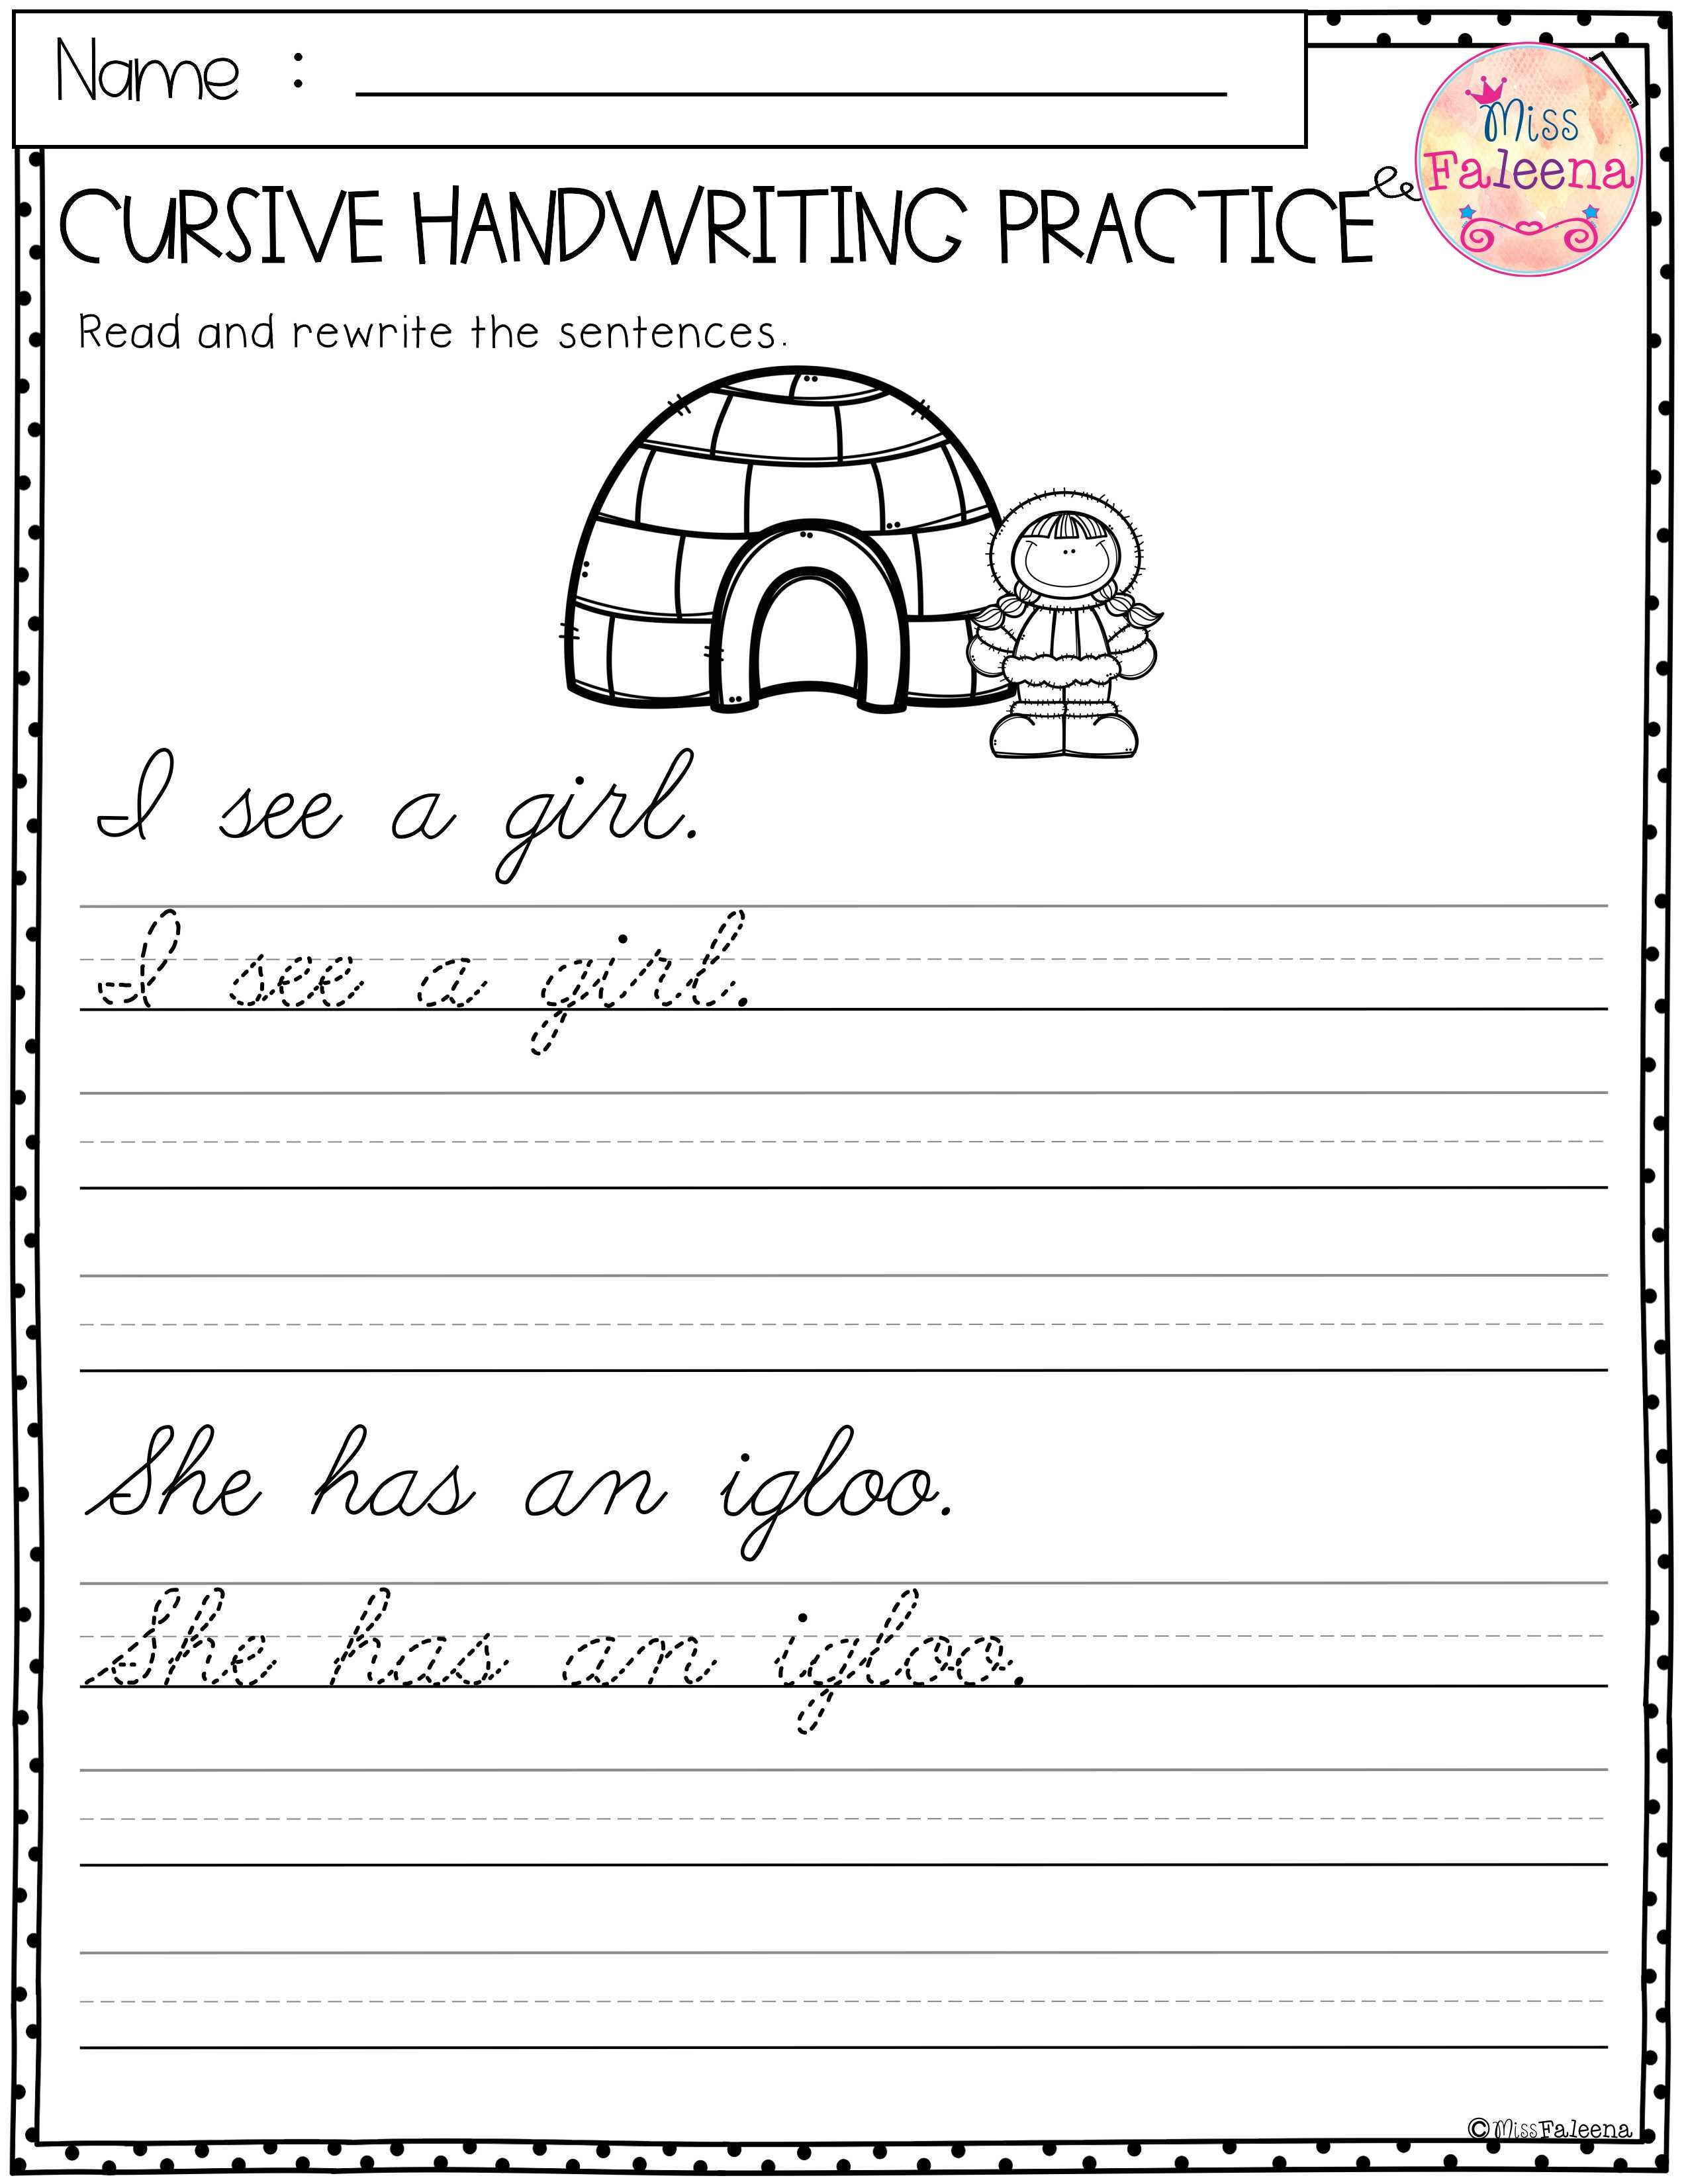 Winter Cursive Handwriting Practice This Product Has 20 Pages Of Handwriting Worksheets Cursive Handwriting Practice Cursive Handwriting Handwriting Practice [ 3300 x 2550 Pixel ]